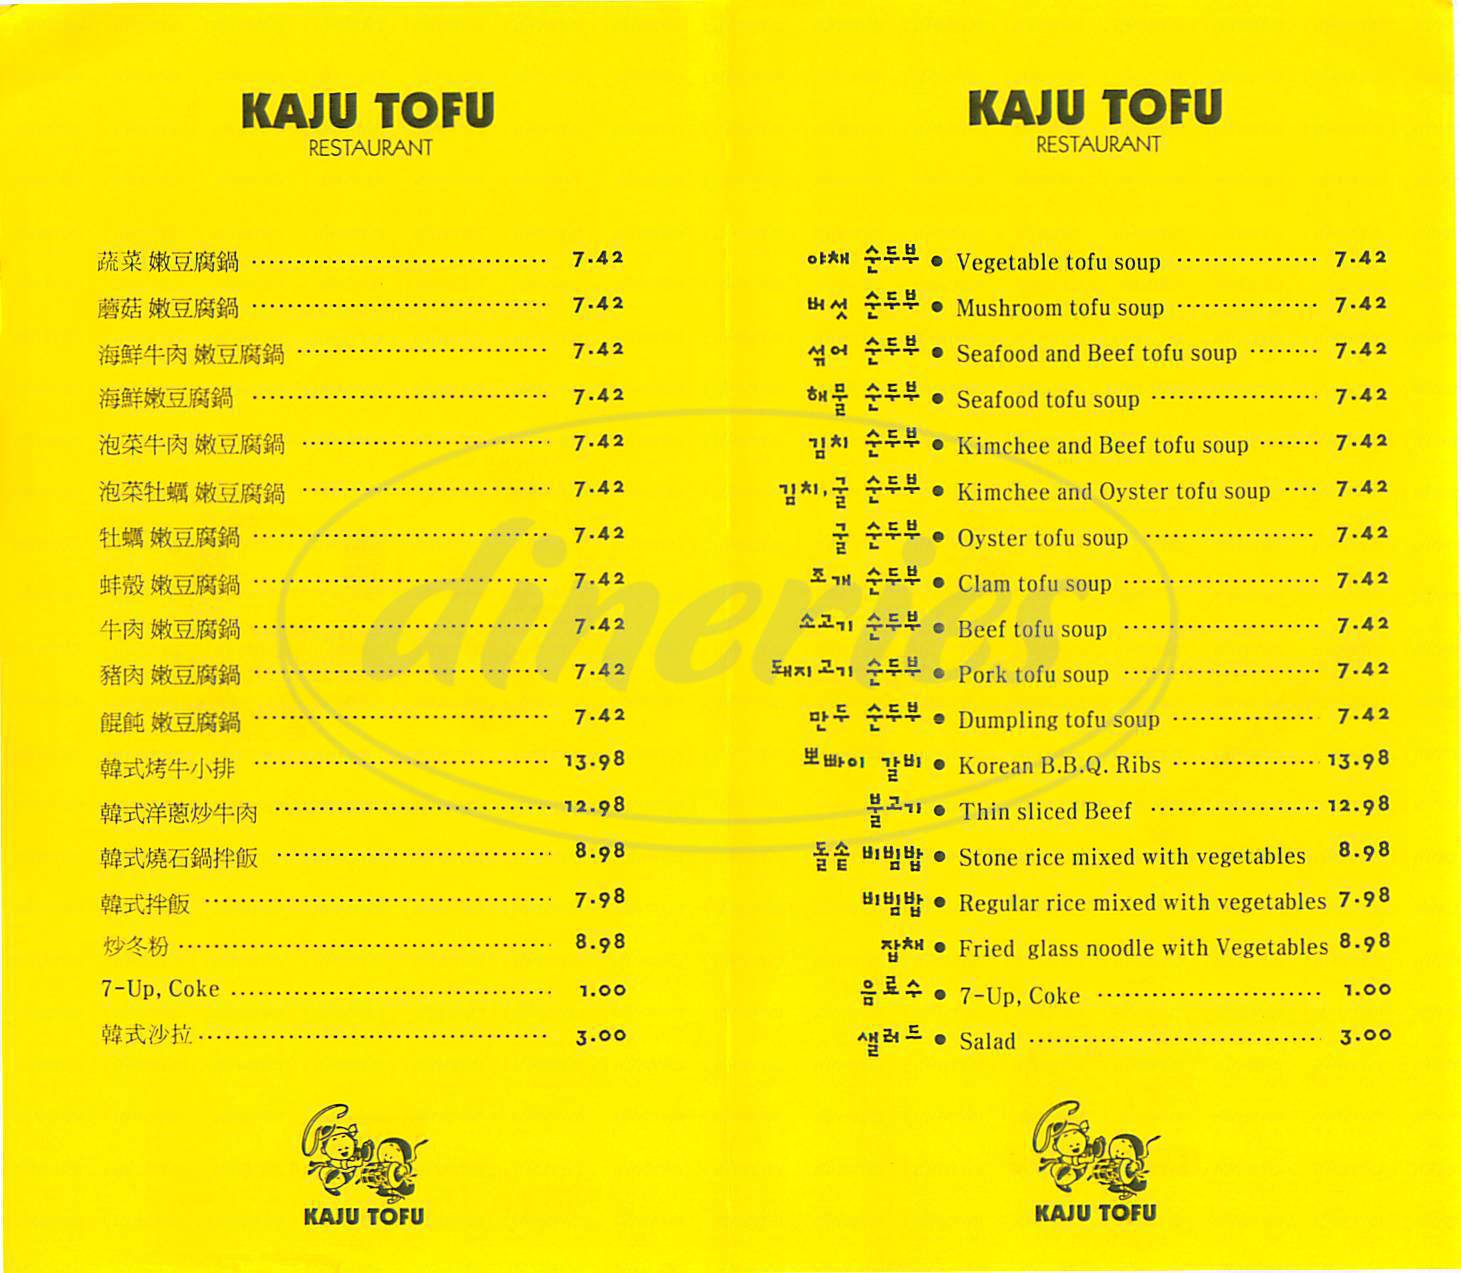 menu for Kaju Tofu Restaurant